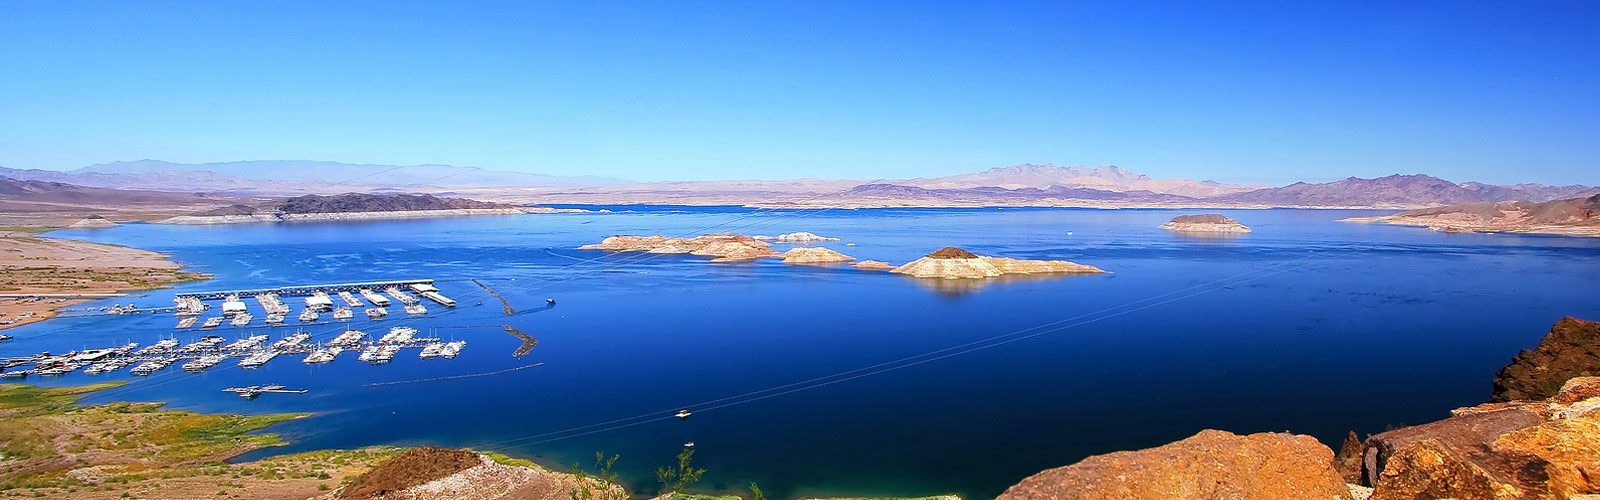 Aerial photo over lake mead